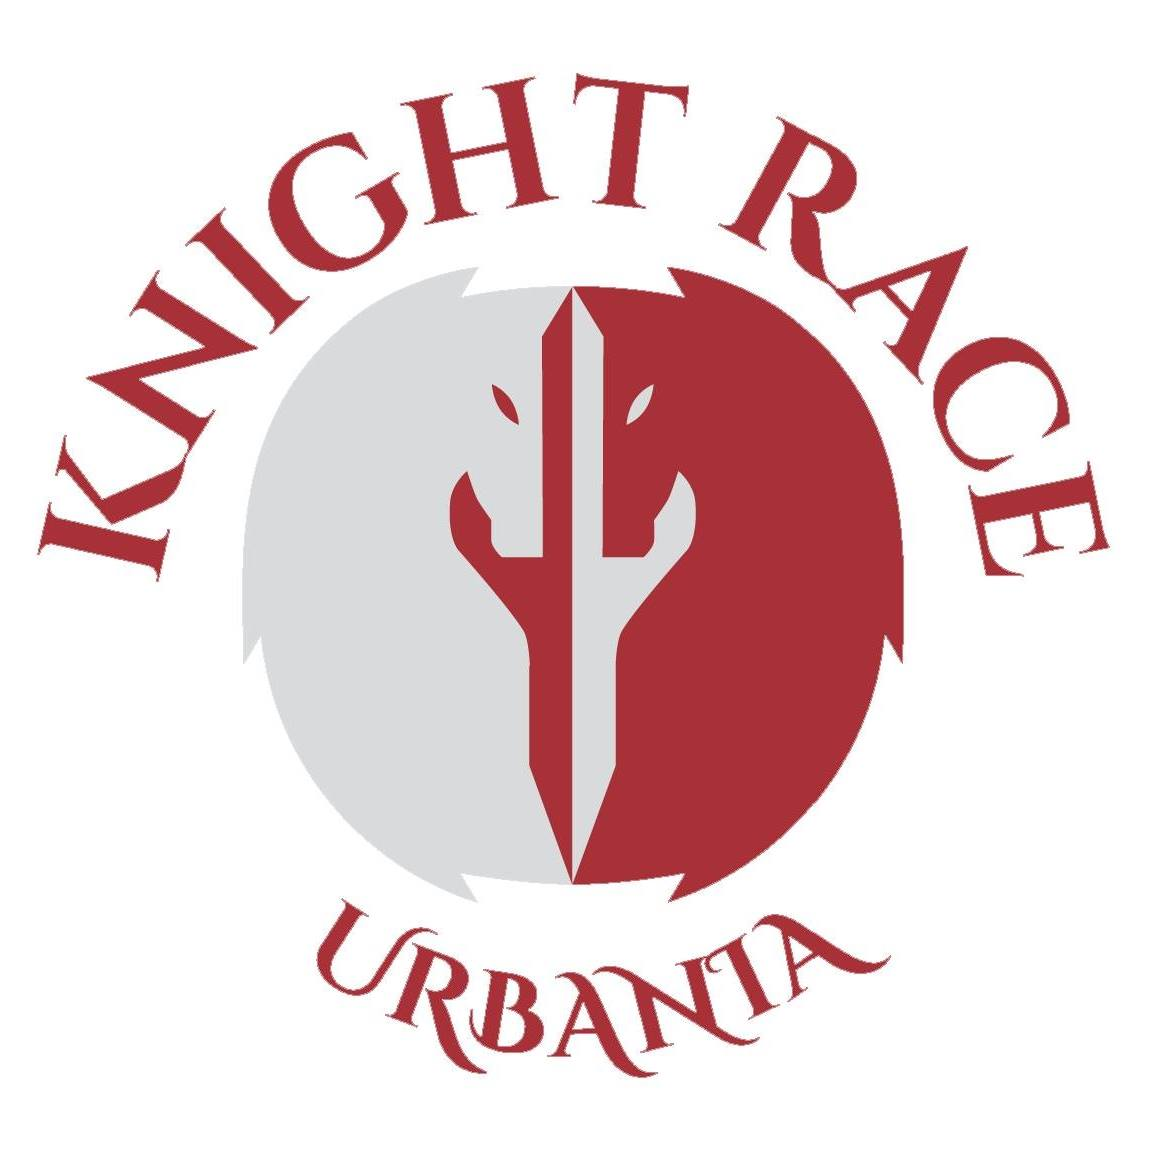 Winter Knight Race - Urbania - OCR | The SunWod